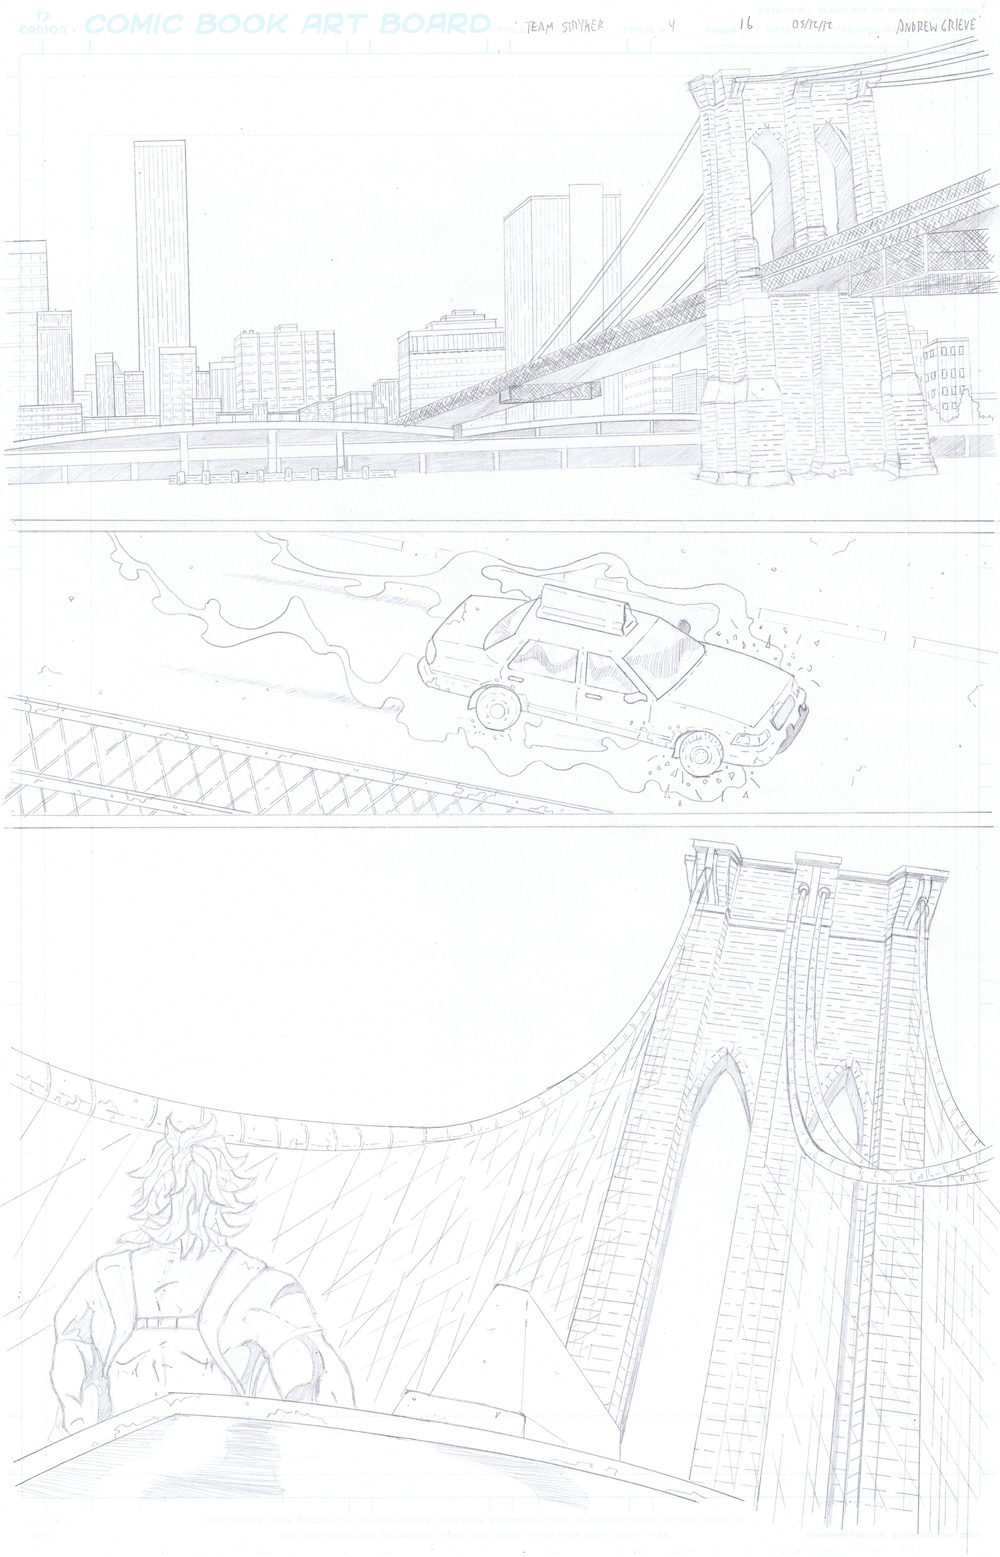 MISSION 004: PAGE 16 PENCIL